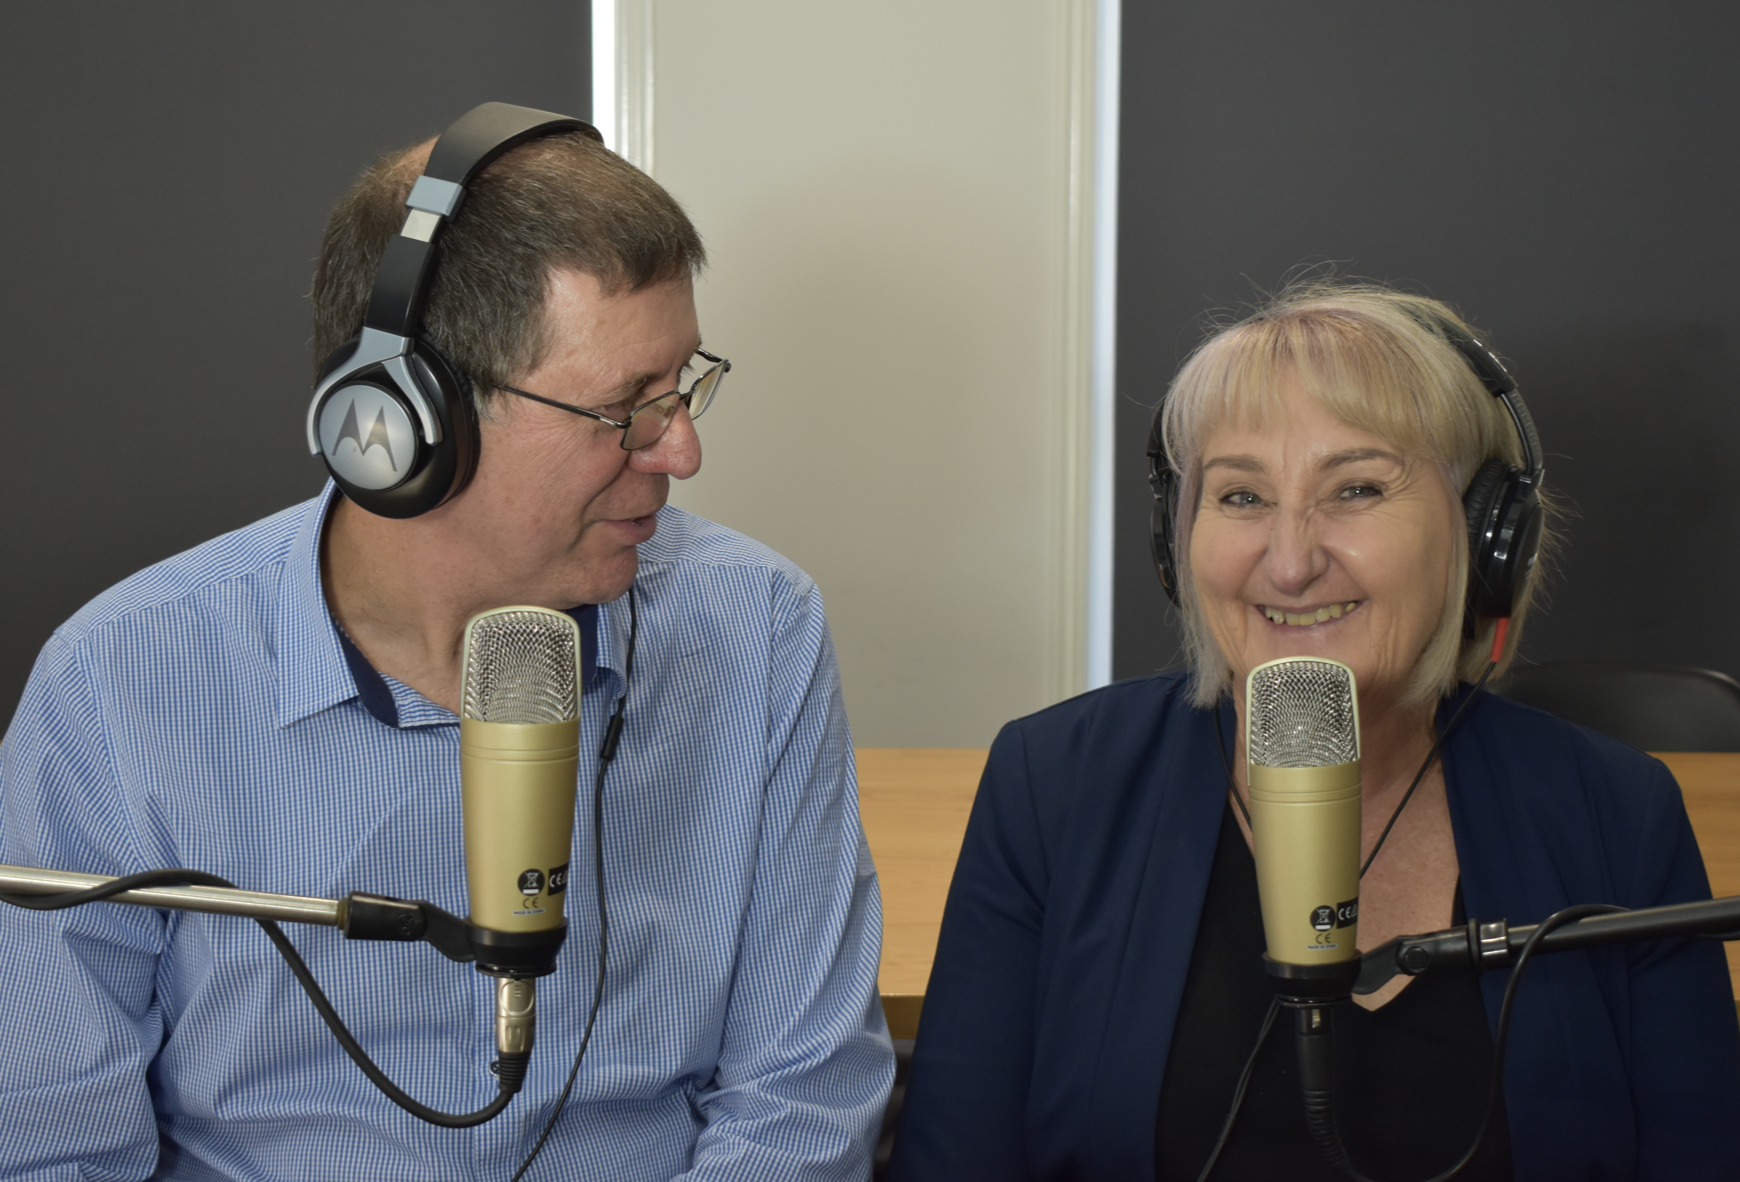 Money Challenges? - Listen to our podcast series Wright on the Money, hosted by David Wright and co-hosted by Carolyn Moes. Learn how you can achieve financial freedom!